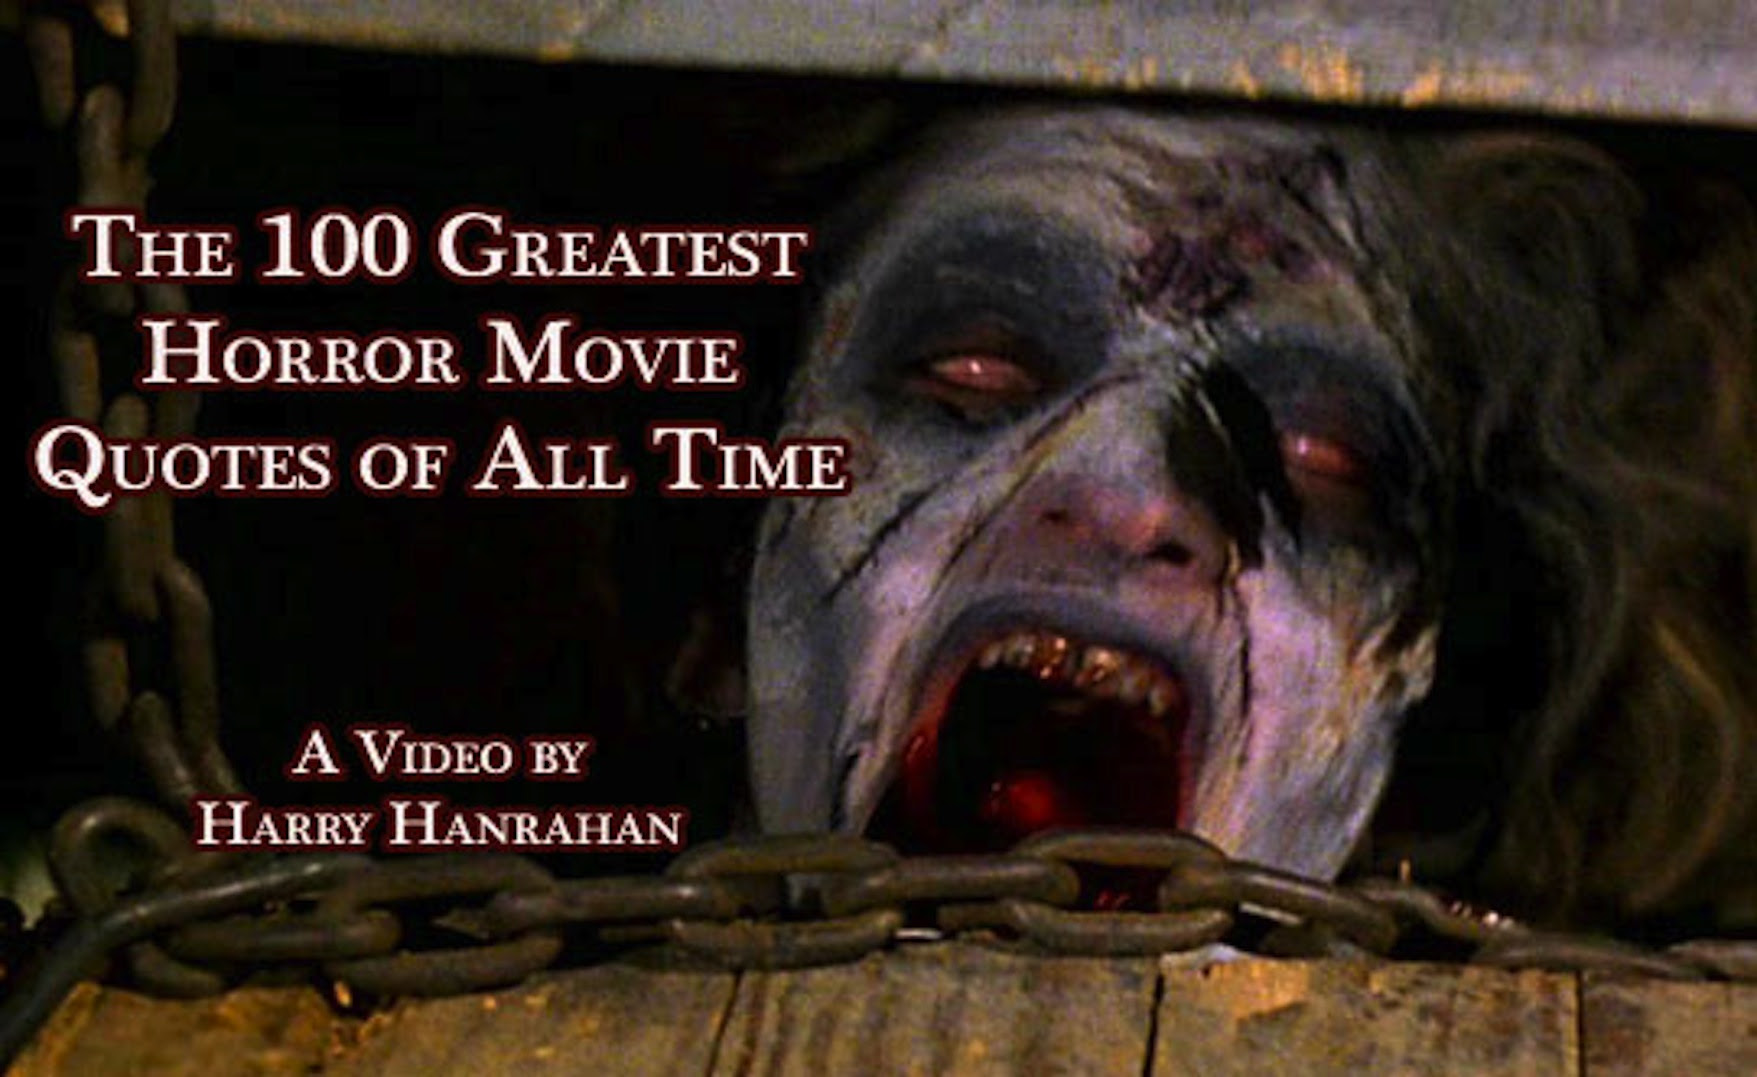 100 Greatest Horror Movie Quotes of all Time